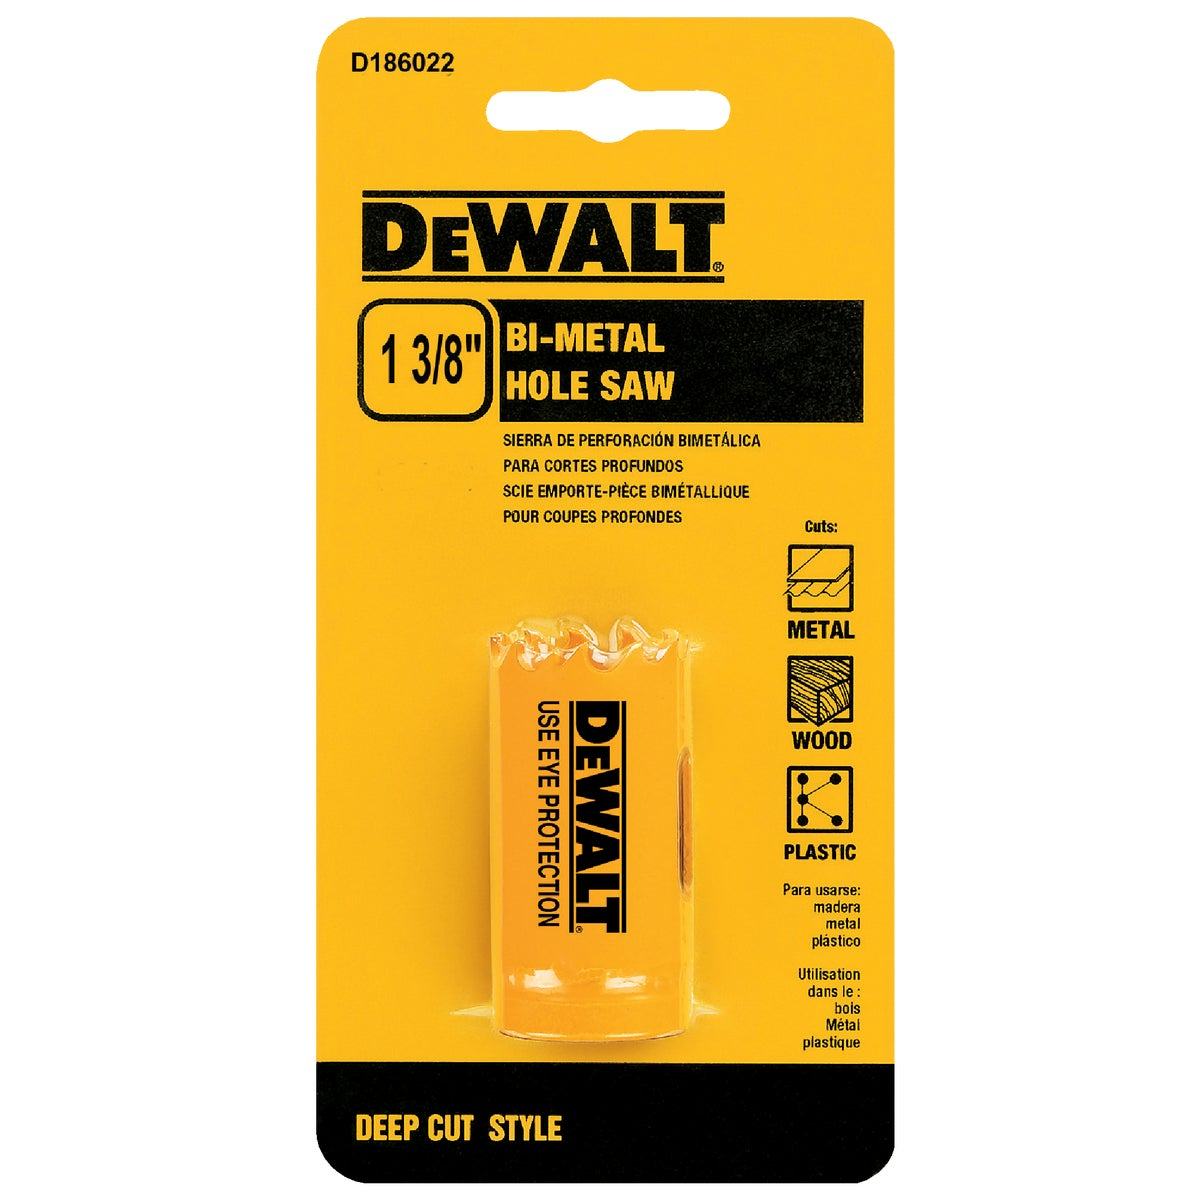 "1-3/8"" HOLE SAW - D180022 by DeWalt"